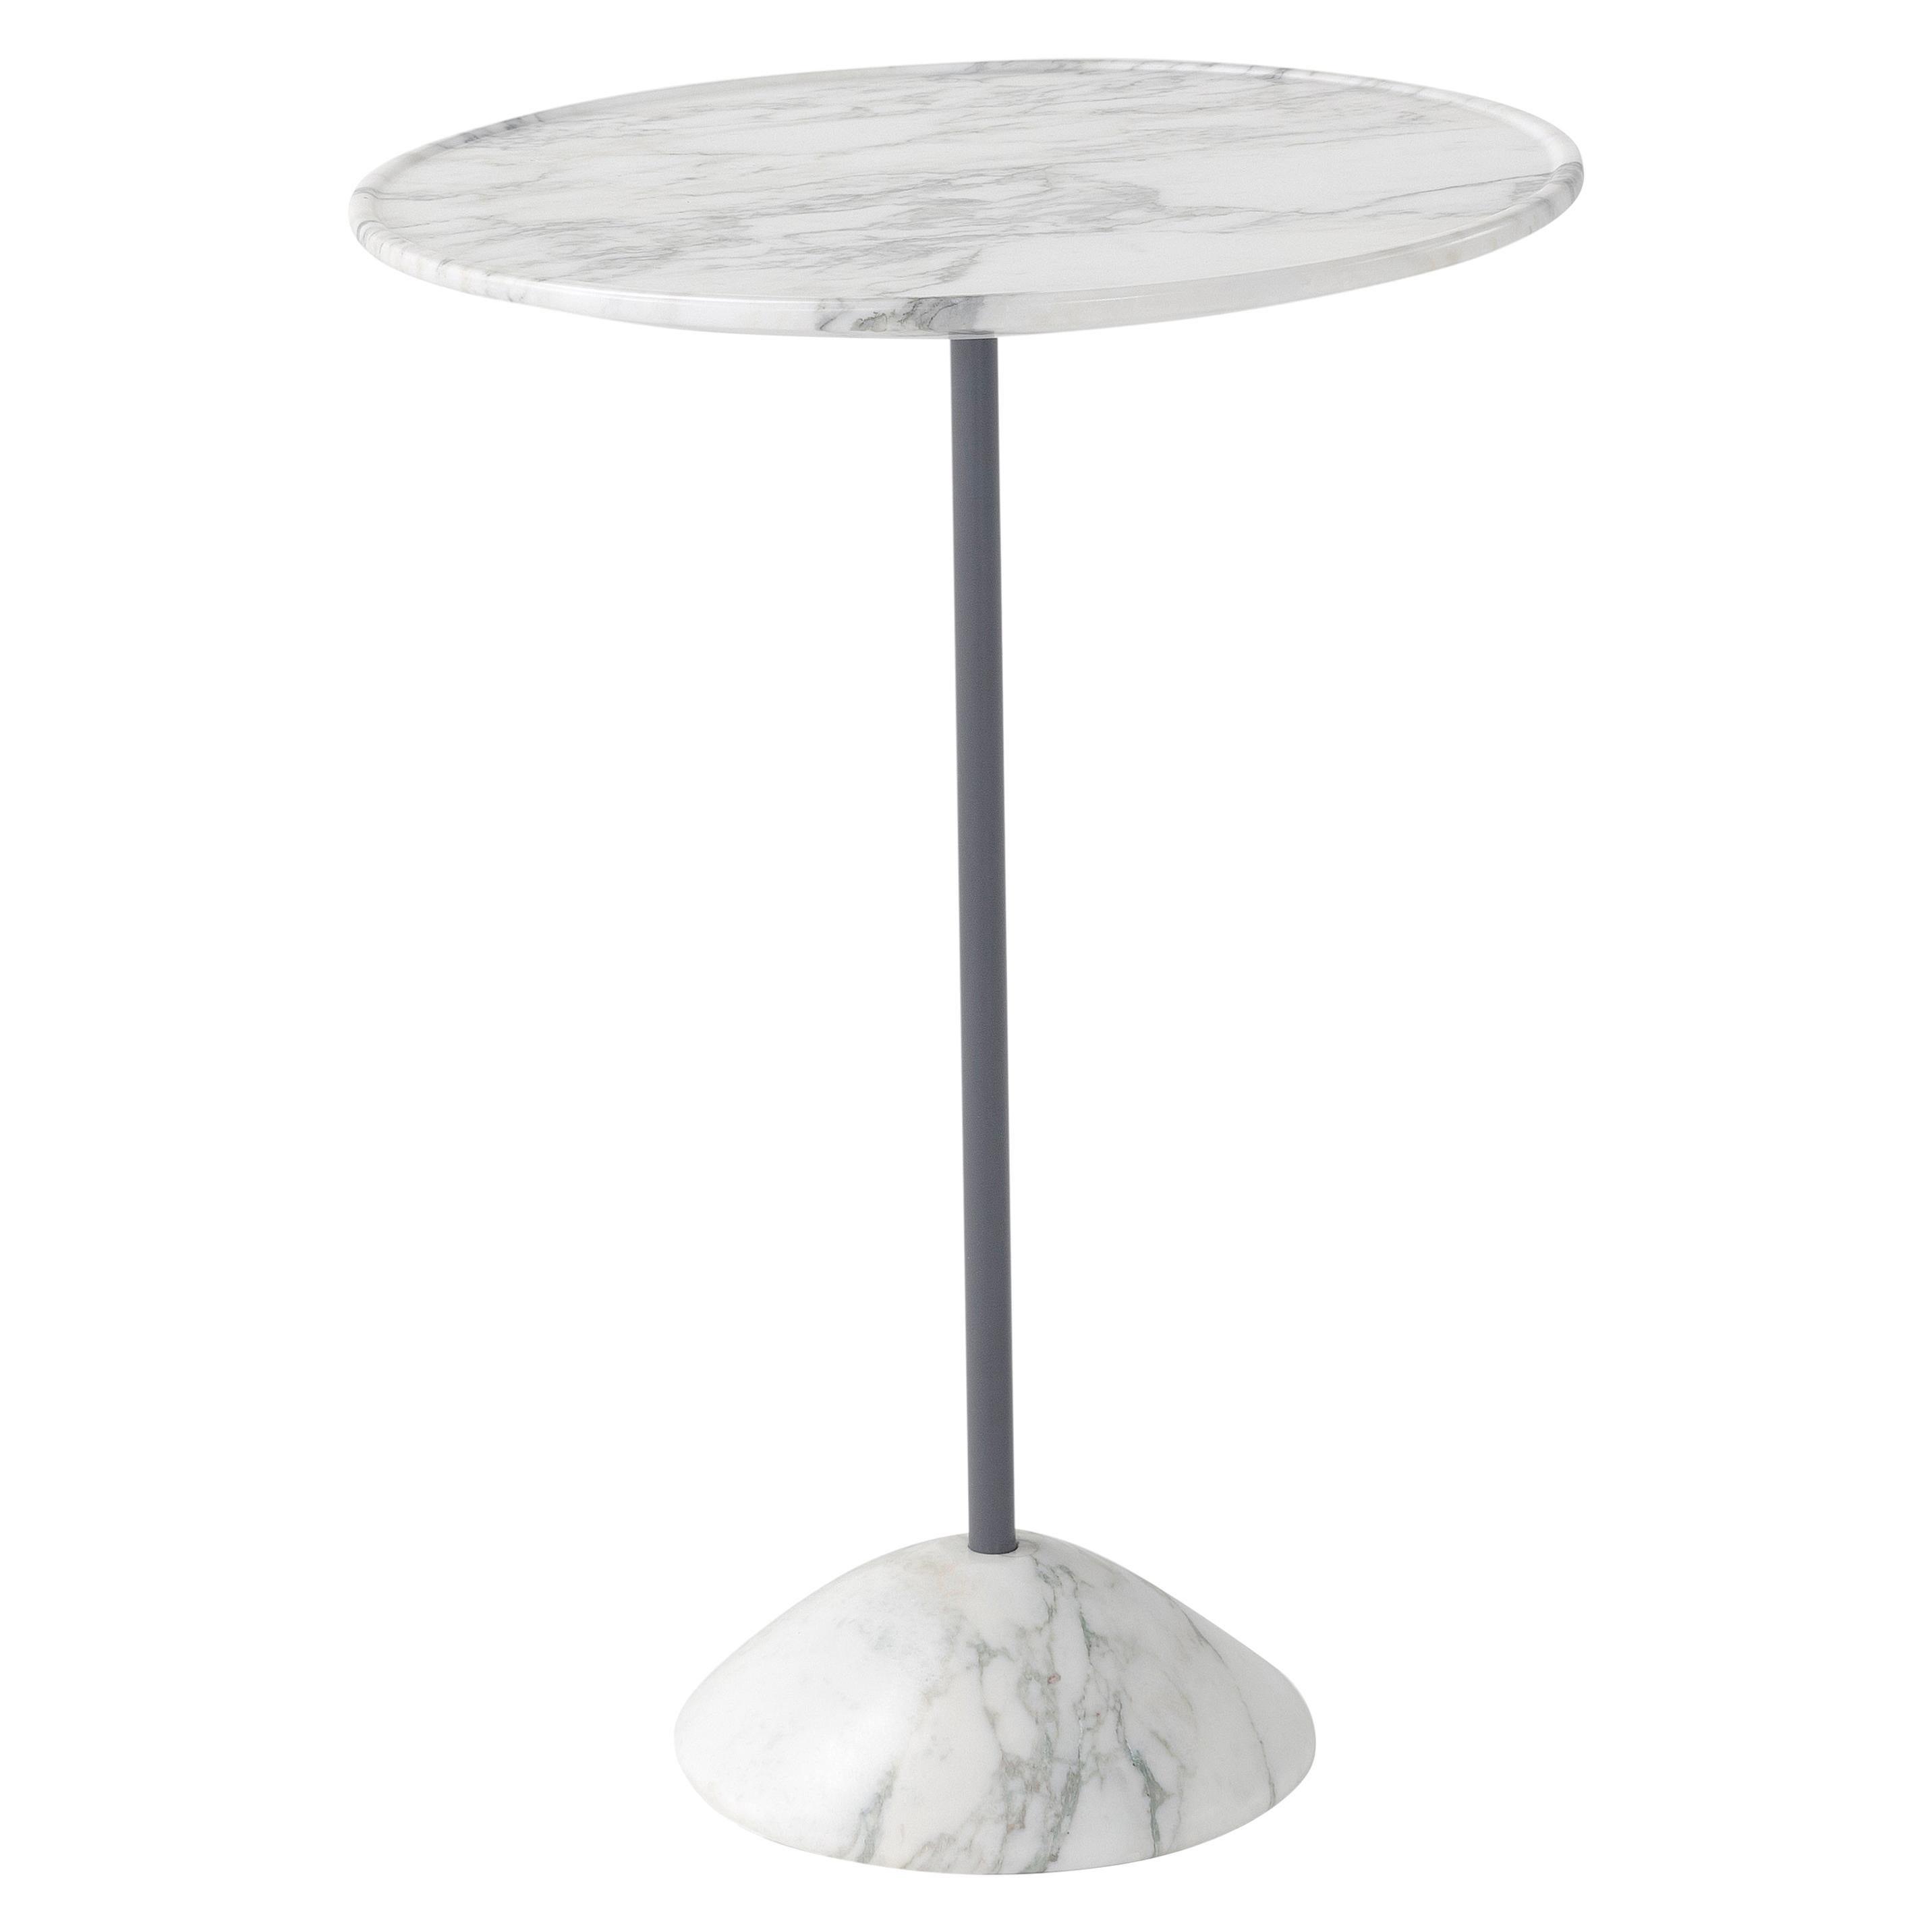 Amura Hourglass Coffee Table in Arabescato Marble by Amuralab